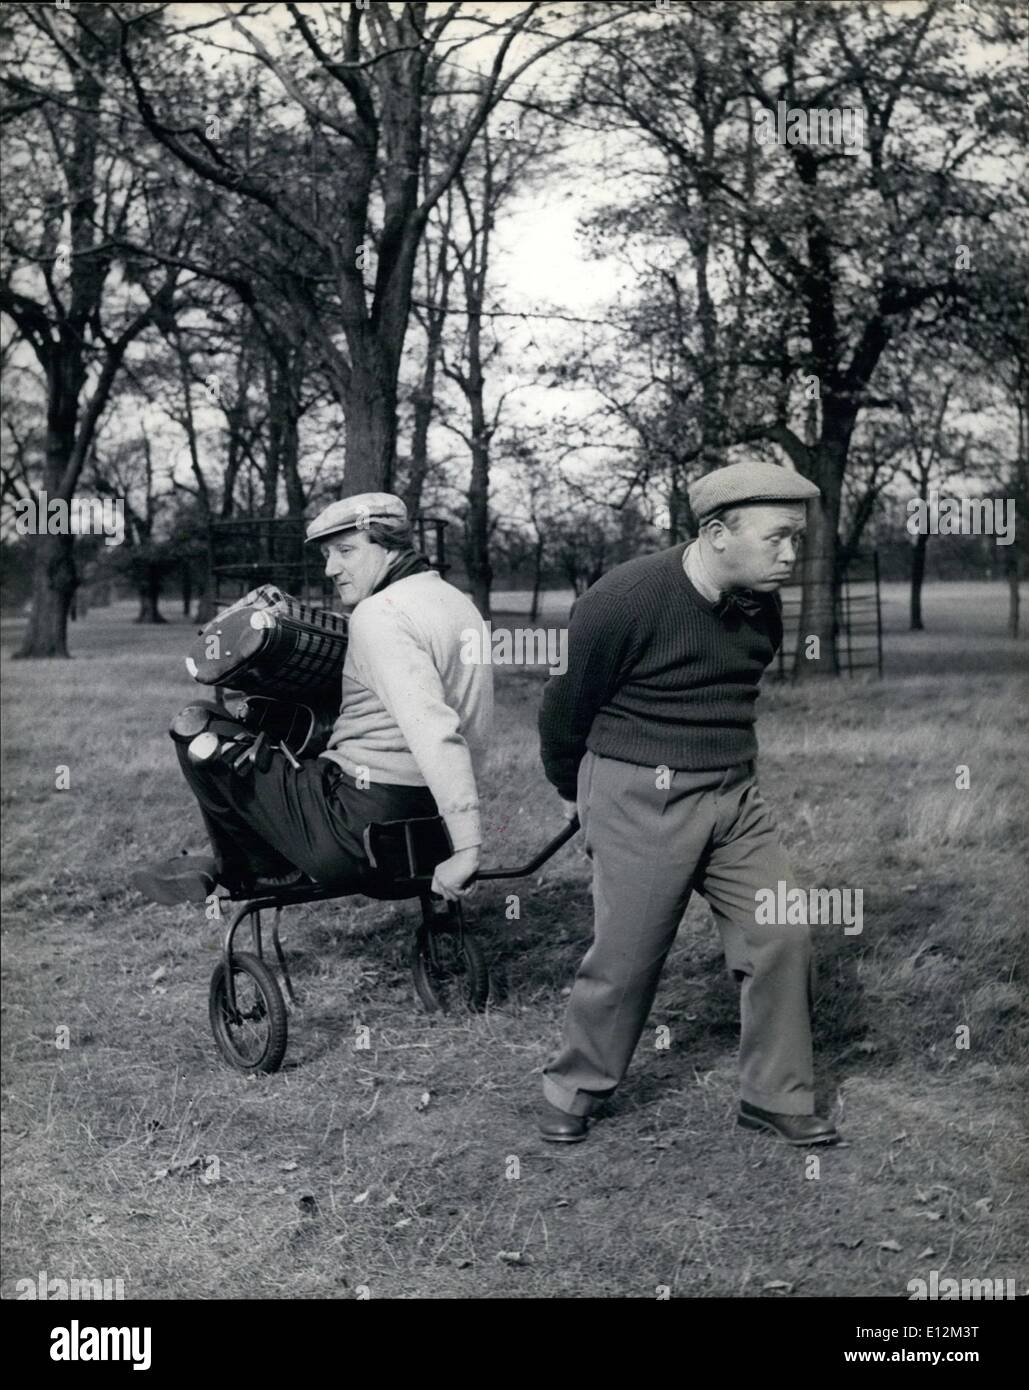 Feb. 24, 2012 - Losr's Penalty: It's always the big 'uns who tire first, and theh little Charlie drake ha to haul his bulky partner round the last hole like this. - Stock Image